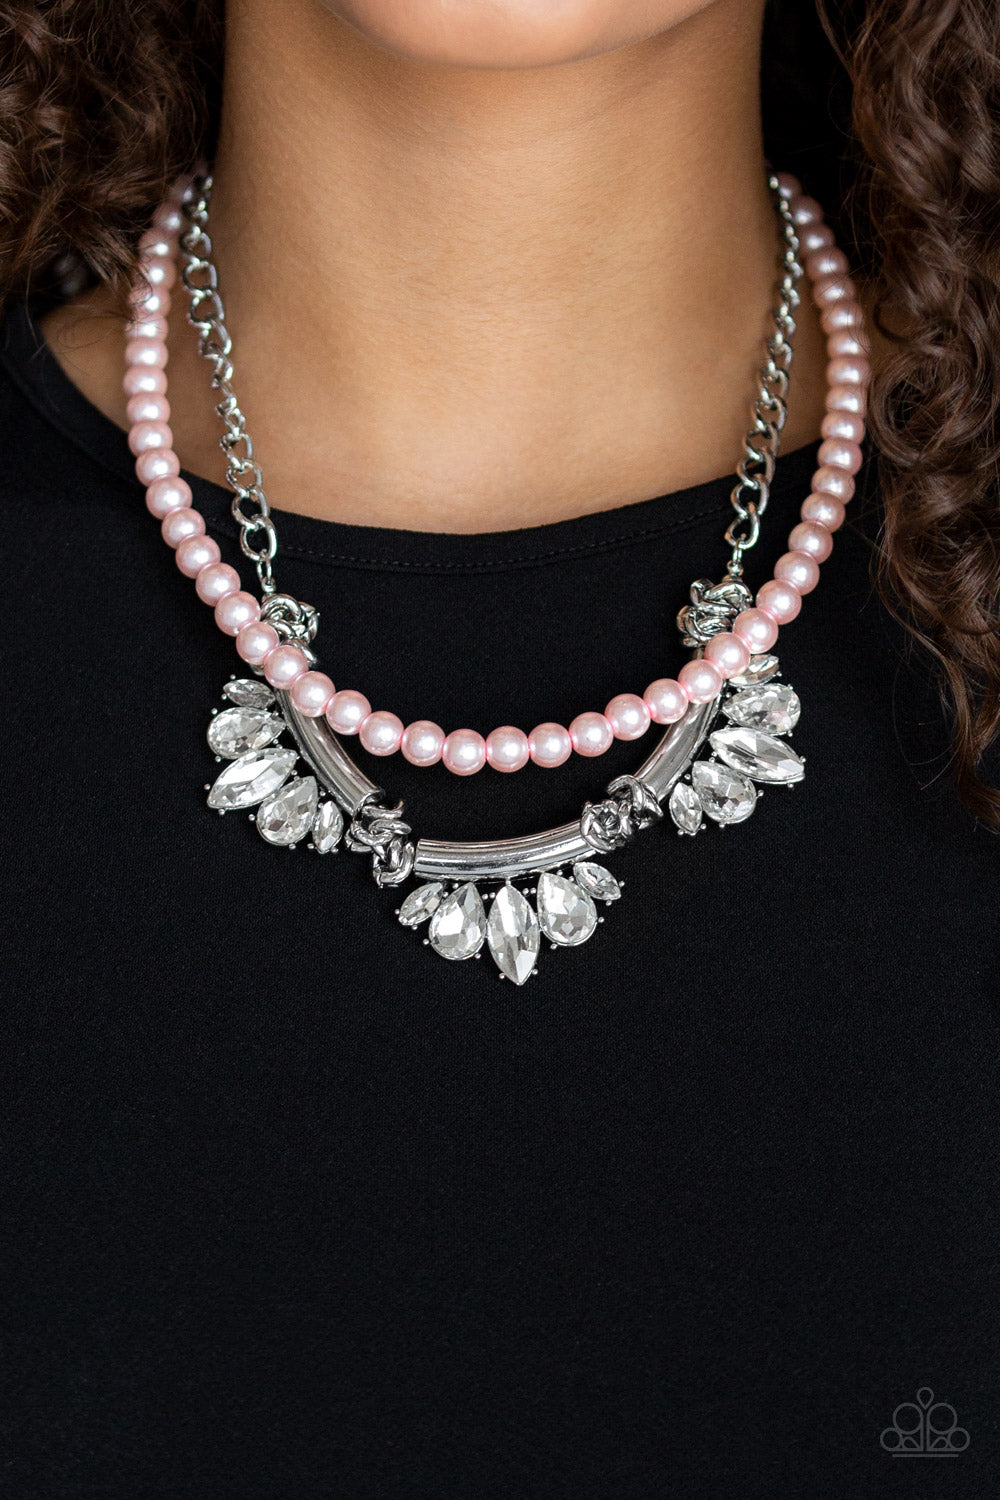 Bow Before The Queen - Pink Pearl White Rhinestone Life Of The Party Paparazzi Jewelry Necklace paparazzi accessories jewelry Necklace